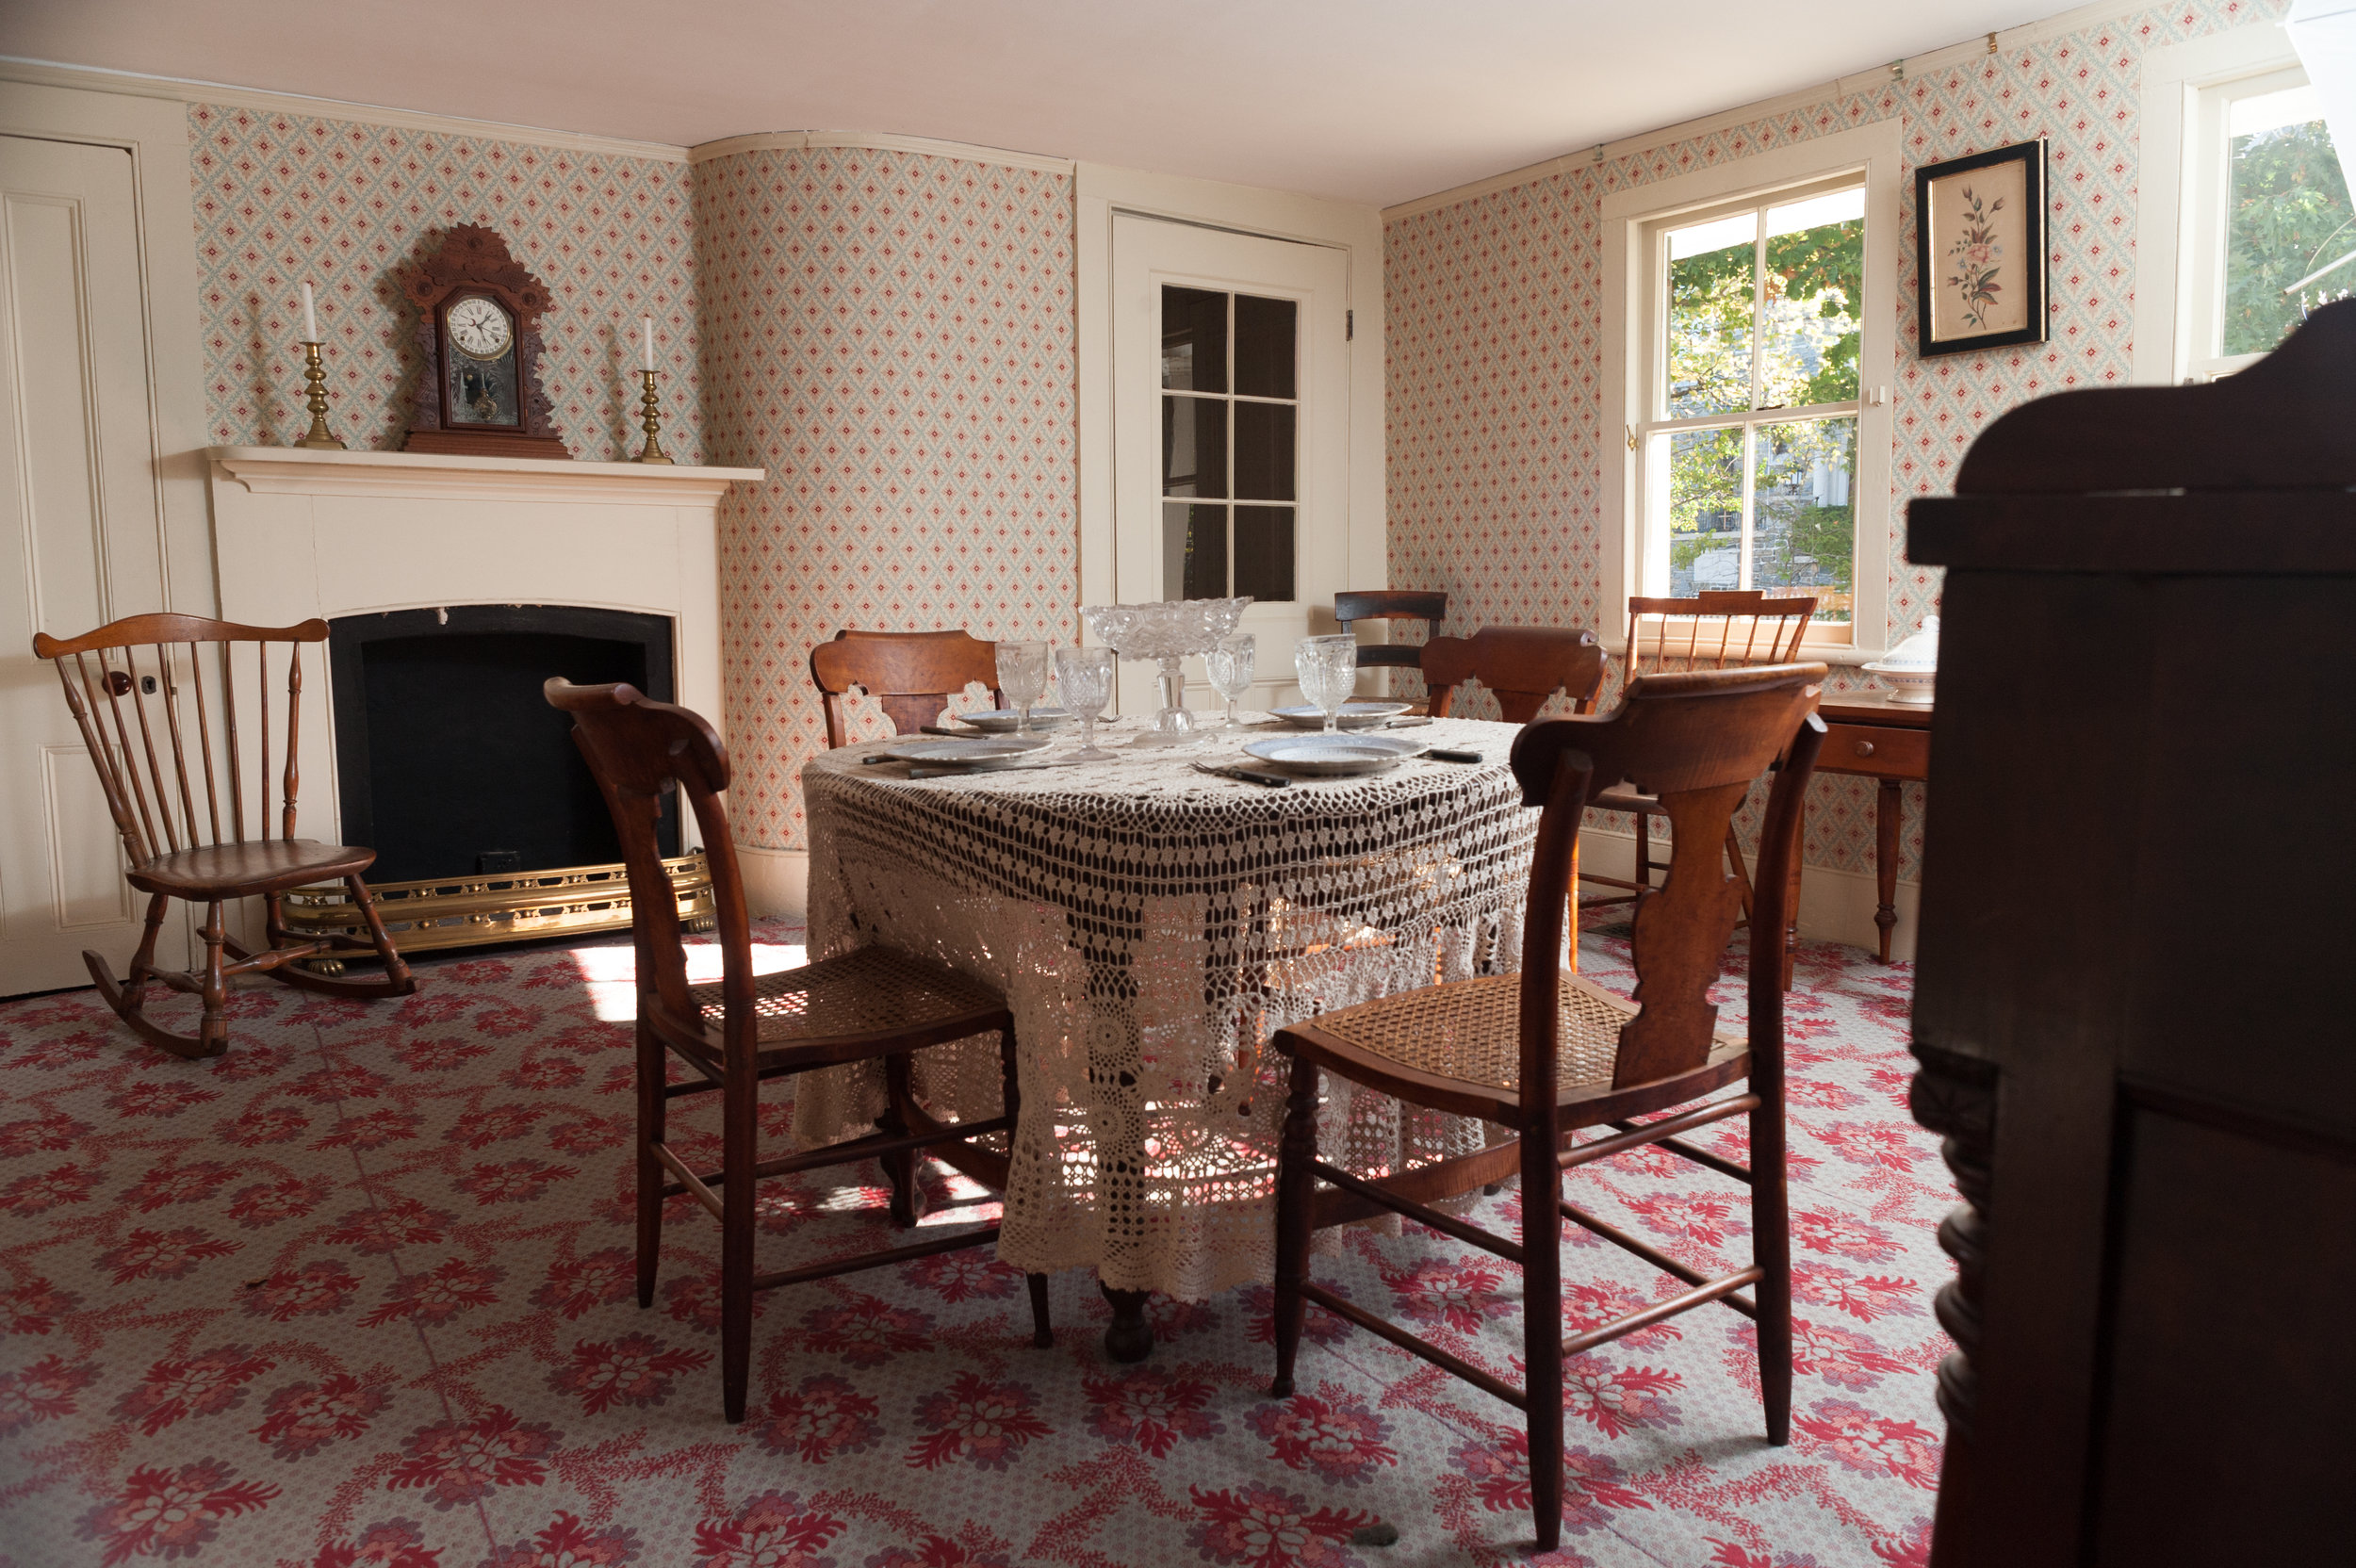 The wallpaper, paint colors, and carpets throughoutthe house were authentic reproductions of popular designs in the 19th century. The dining room carpet design is named Ballstone.